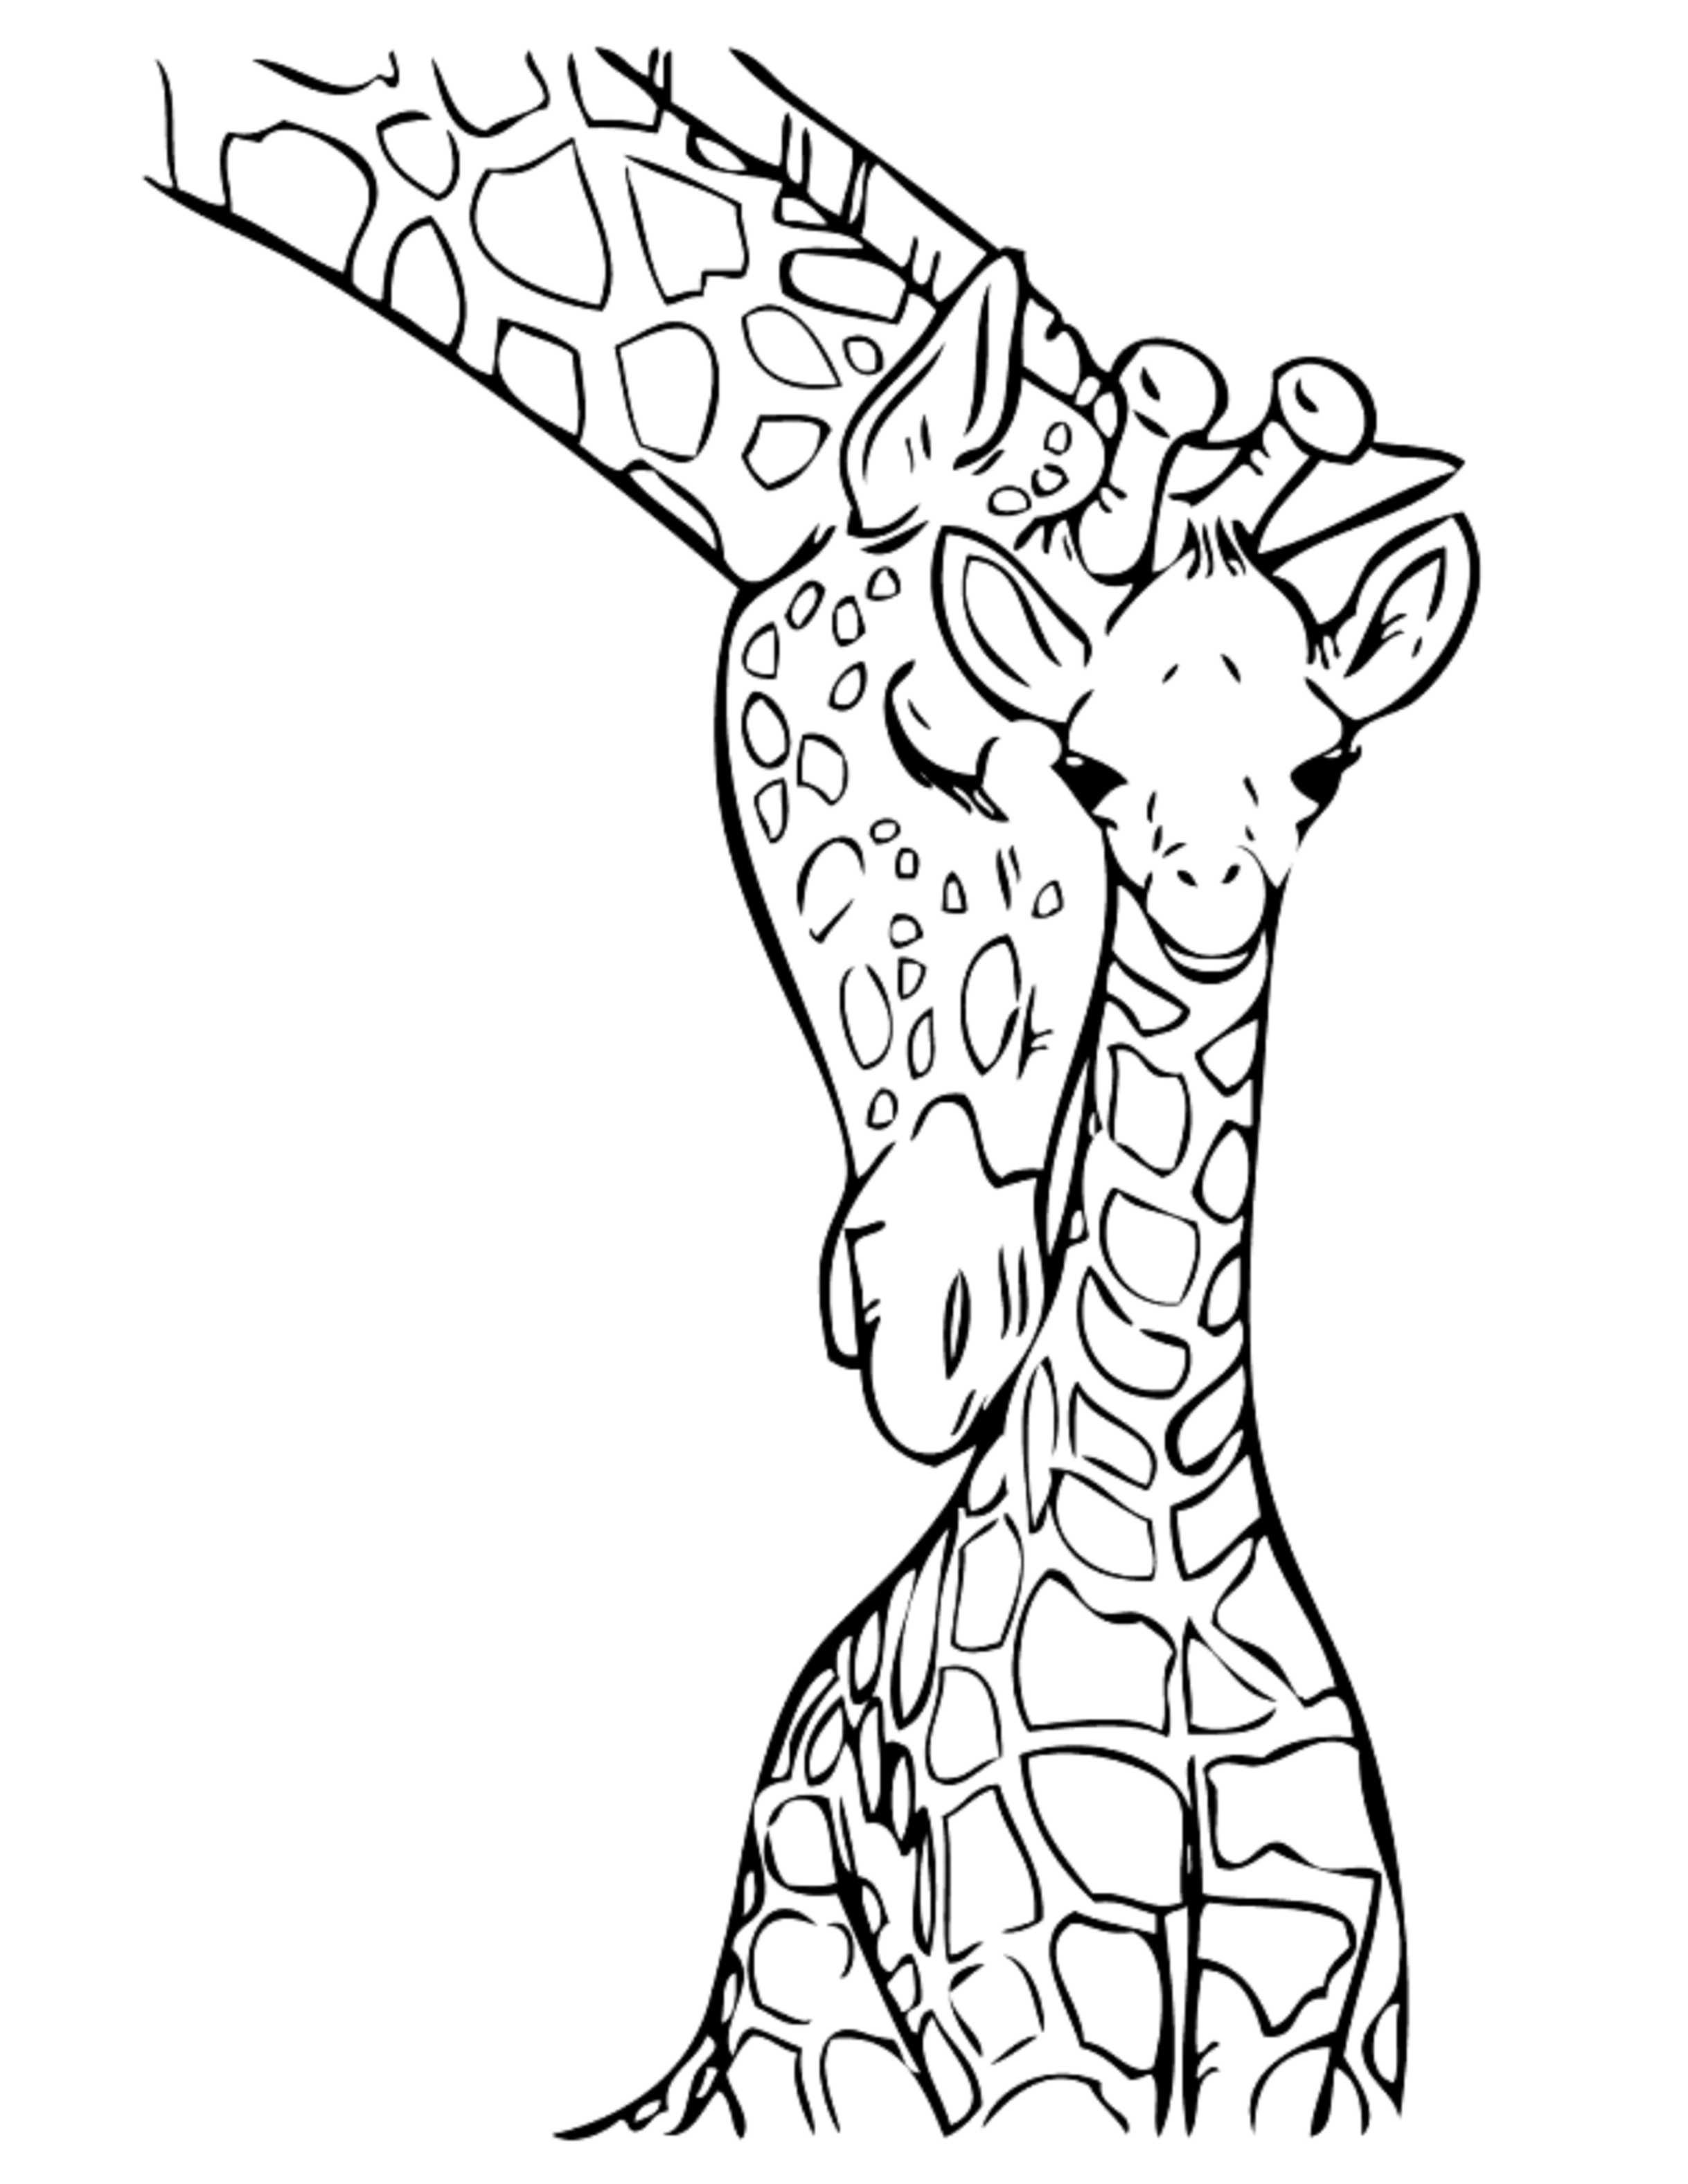 book coloring pages - photo#30